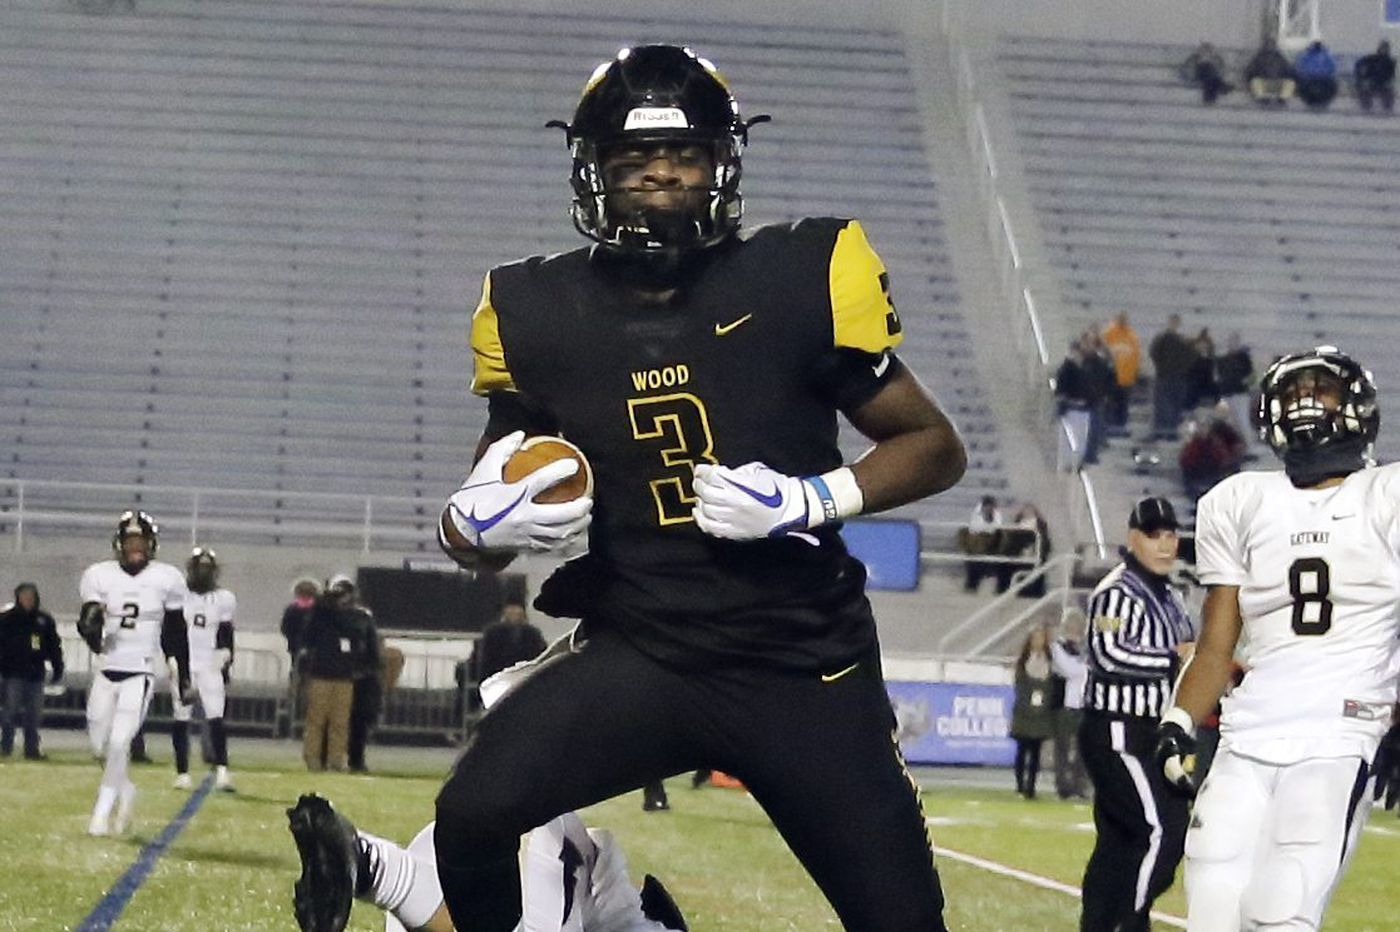 Archbishop Wood's Kyle Pitts expected to sign with Florida